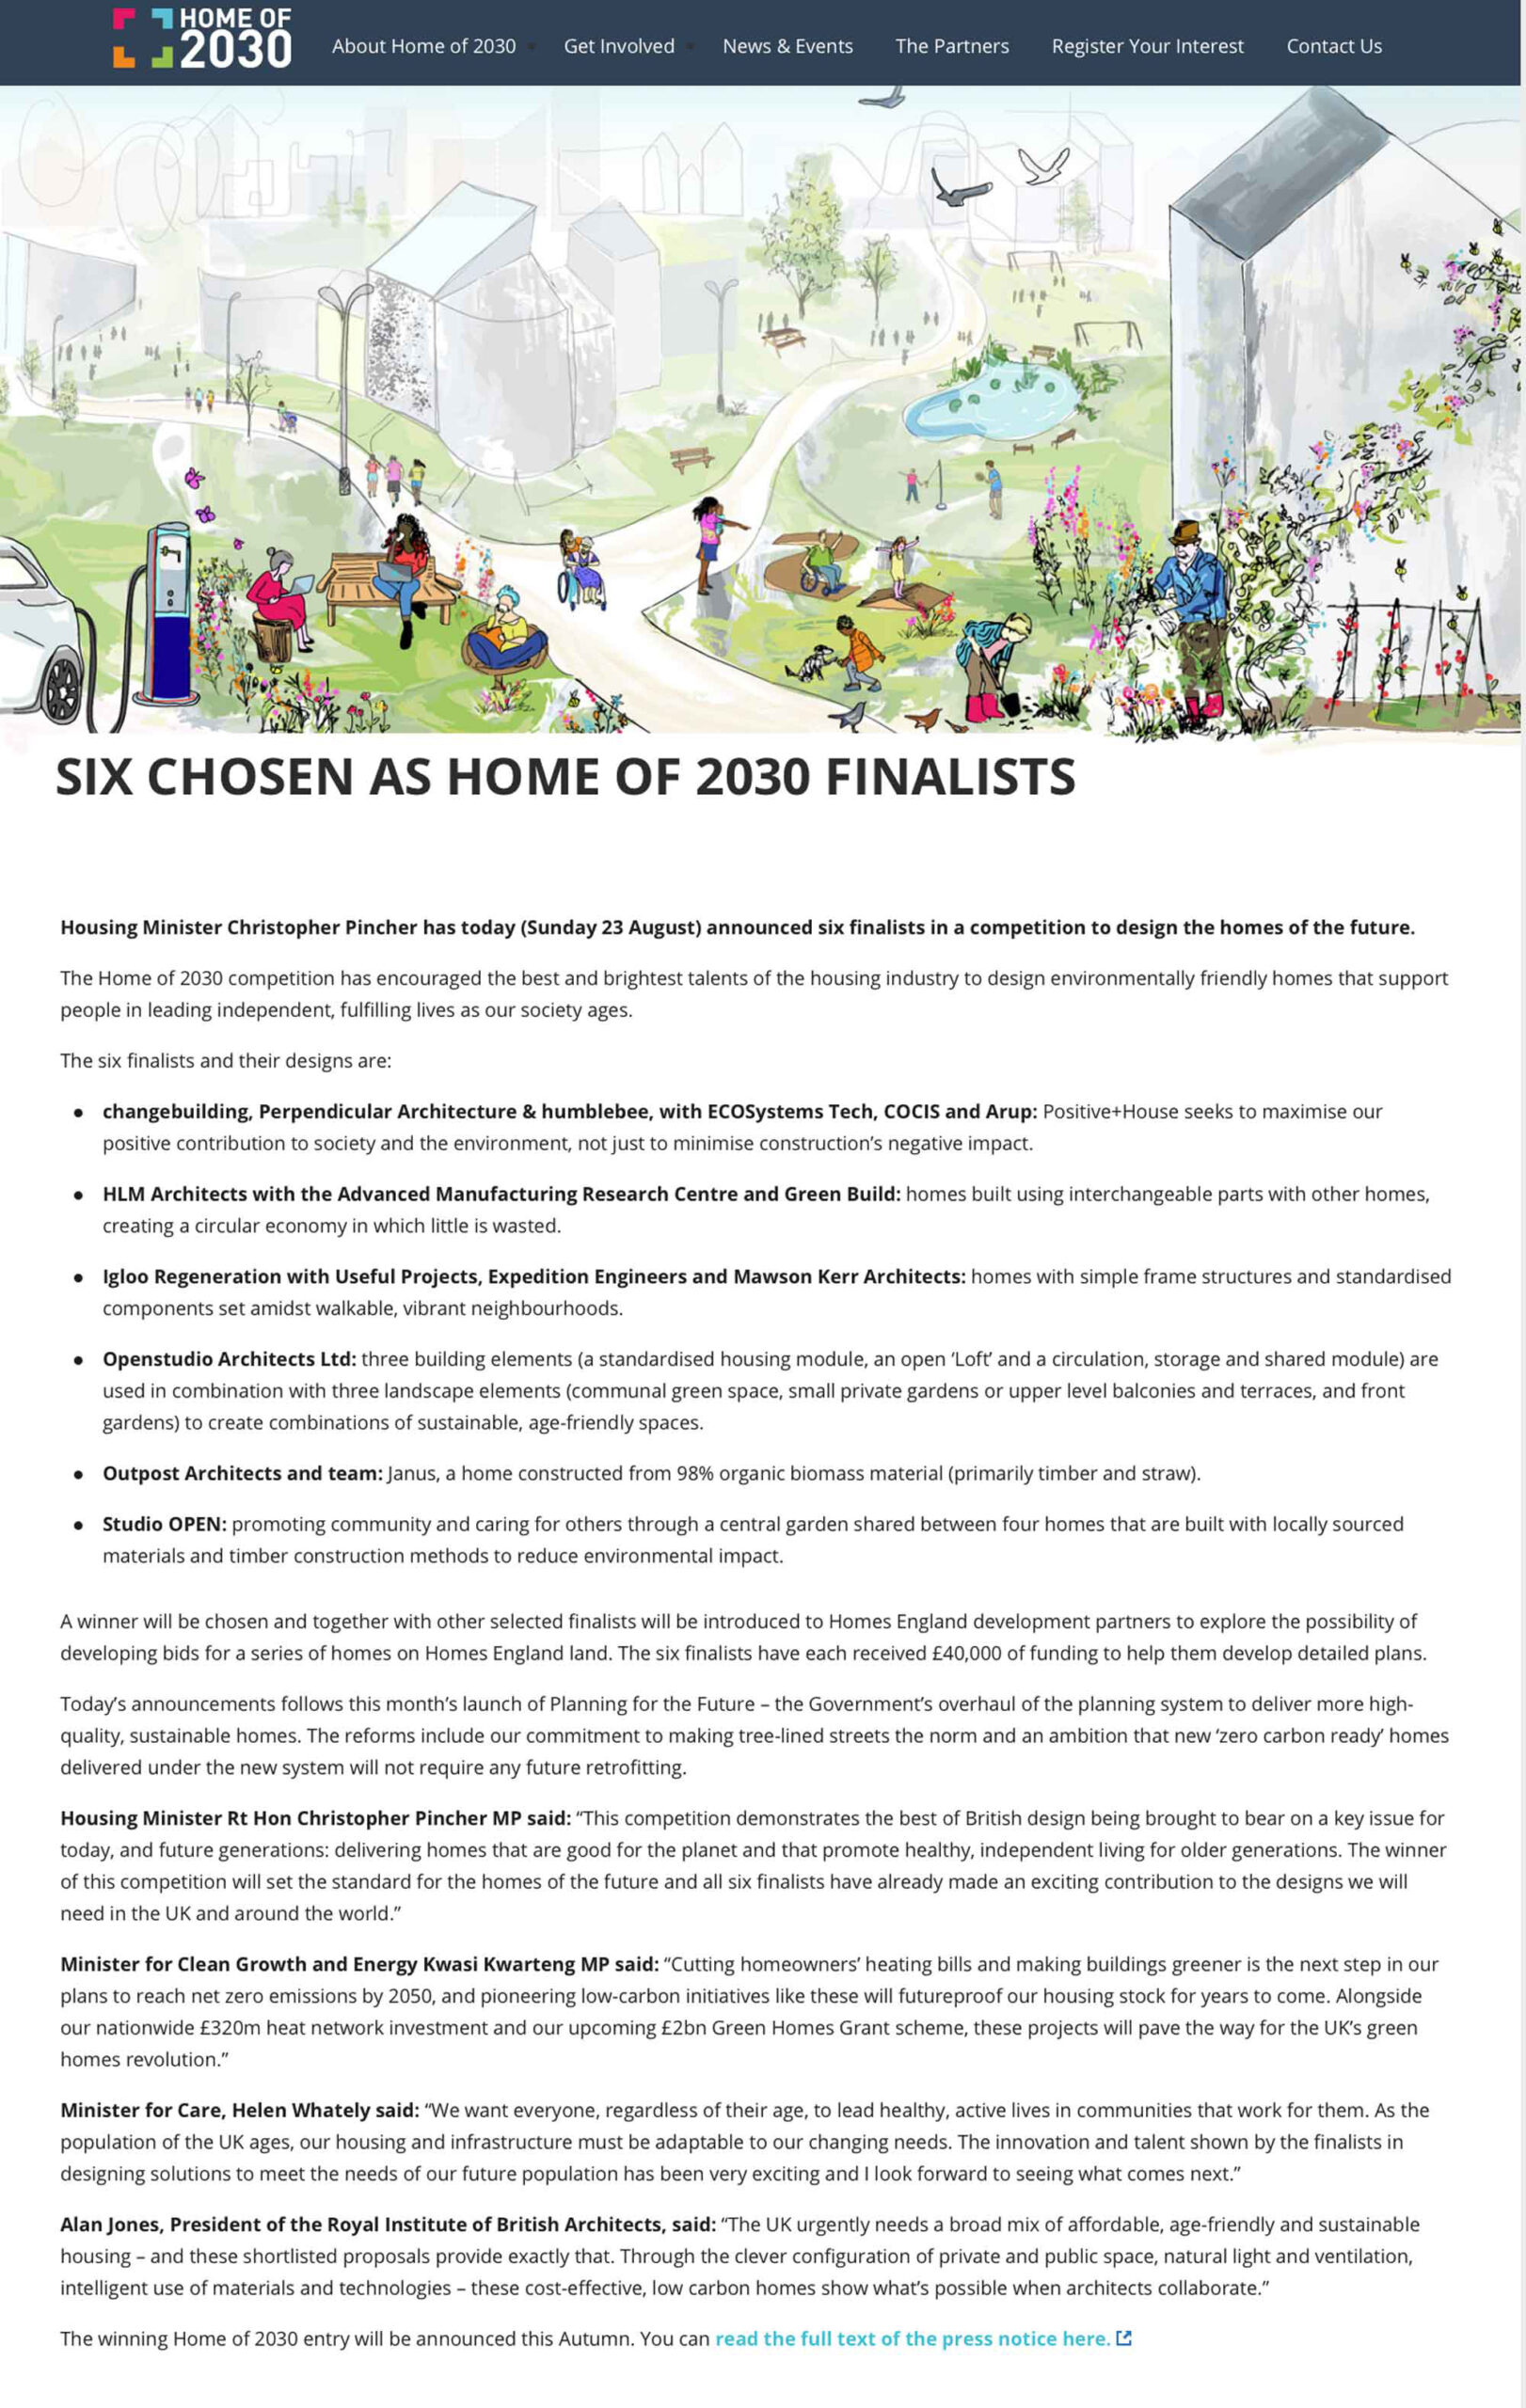 RIBA-competition-home-of-2030-finalists-openstudio-architects